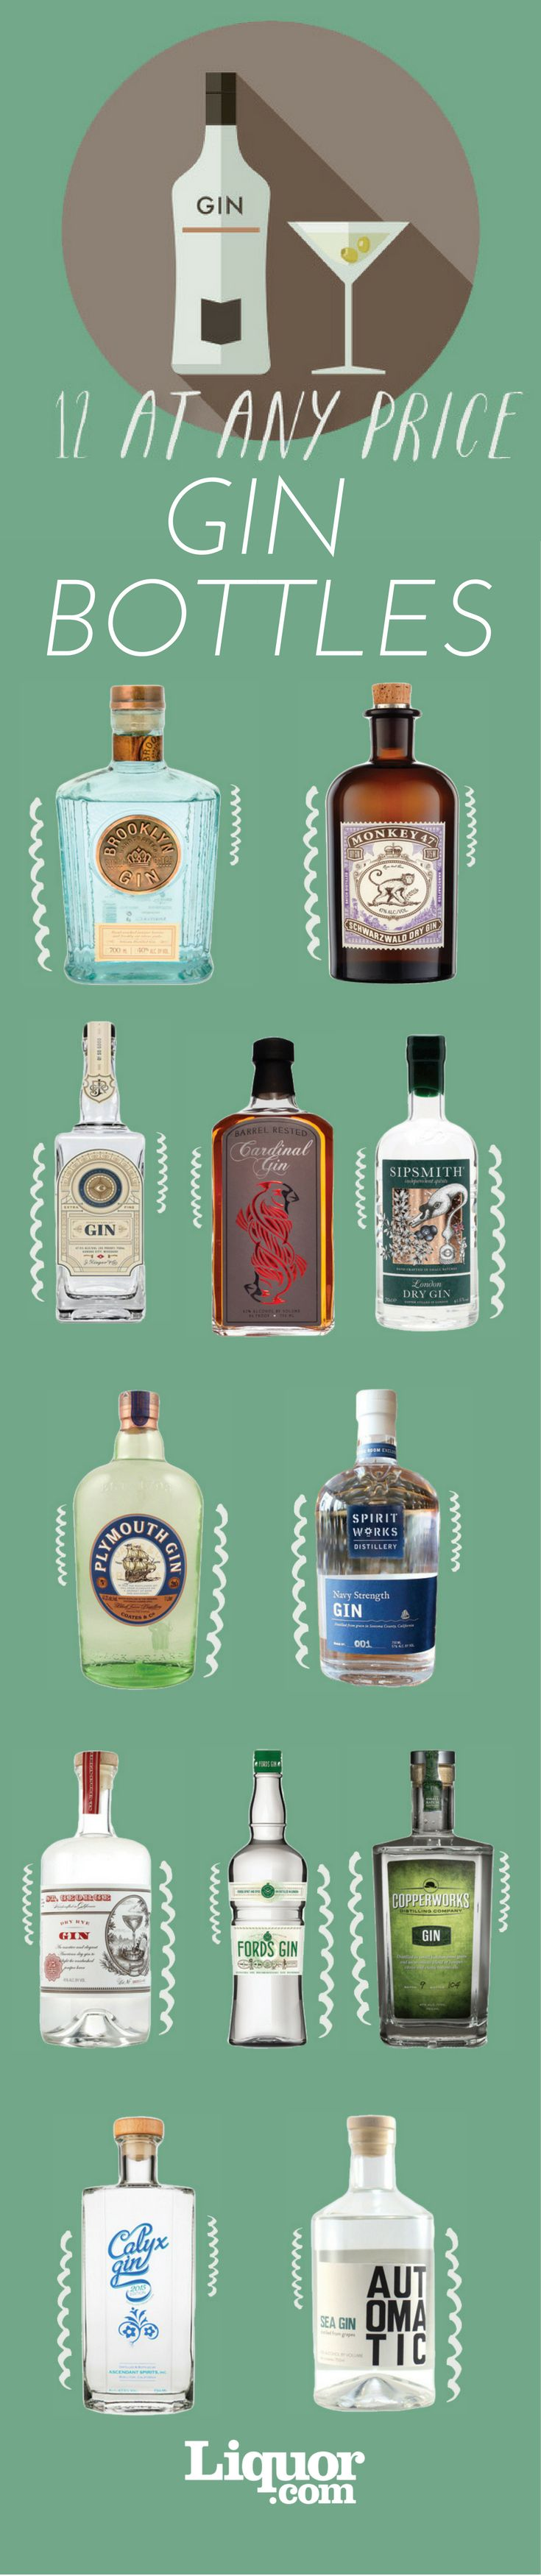 We've rounded up the #best gin of 2016. Regardless of your price point, there's a gin that you'll love. Find your next #gin bottle today at Liquor.com.